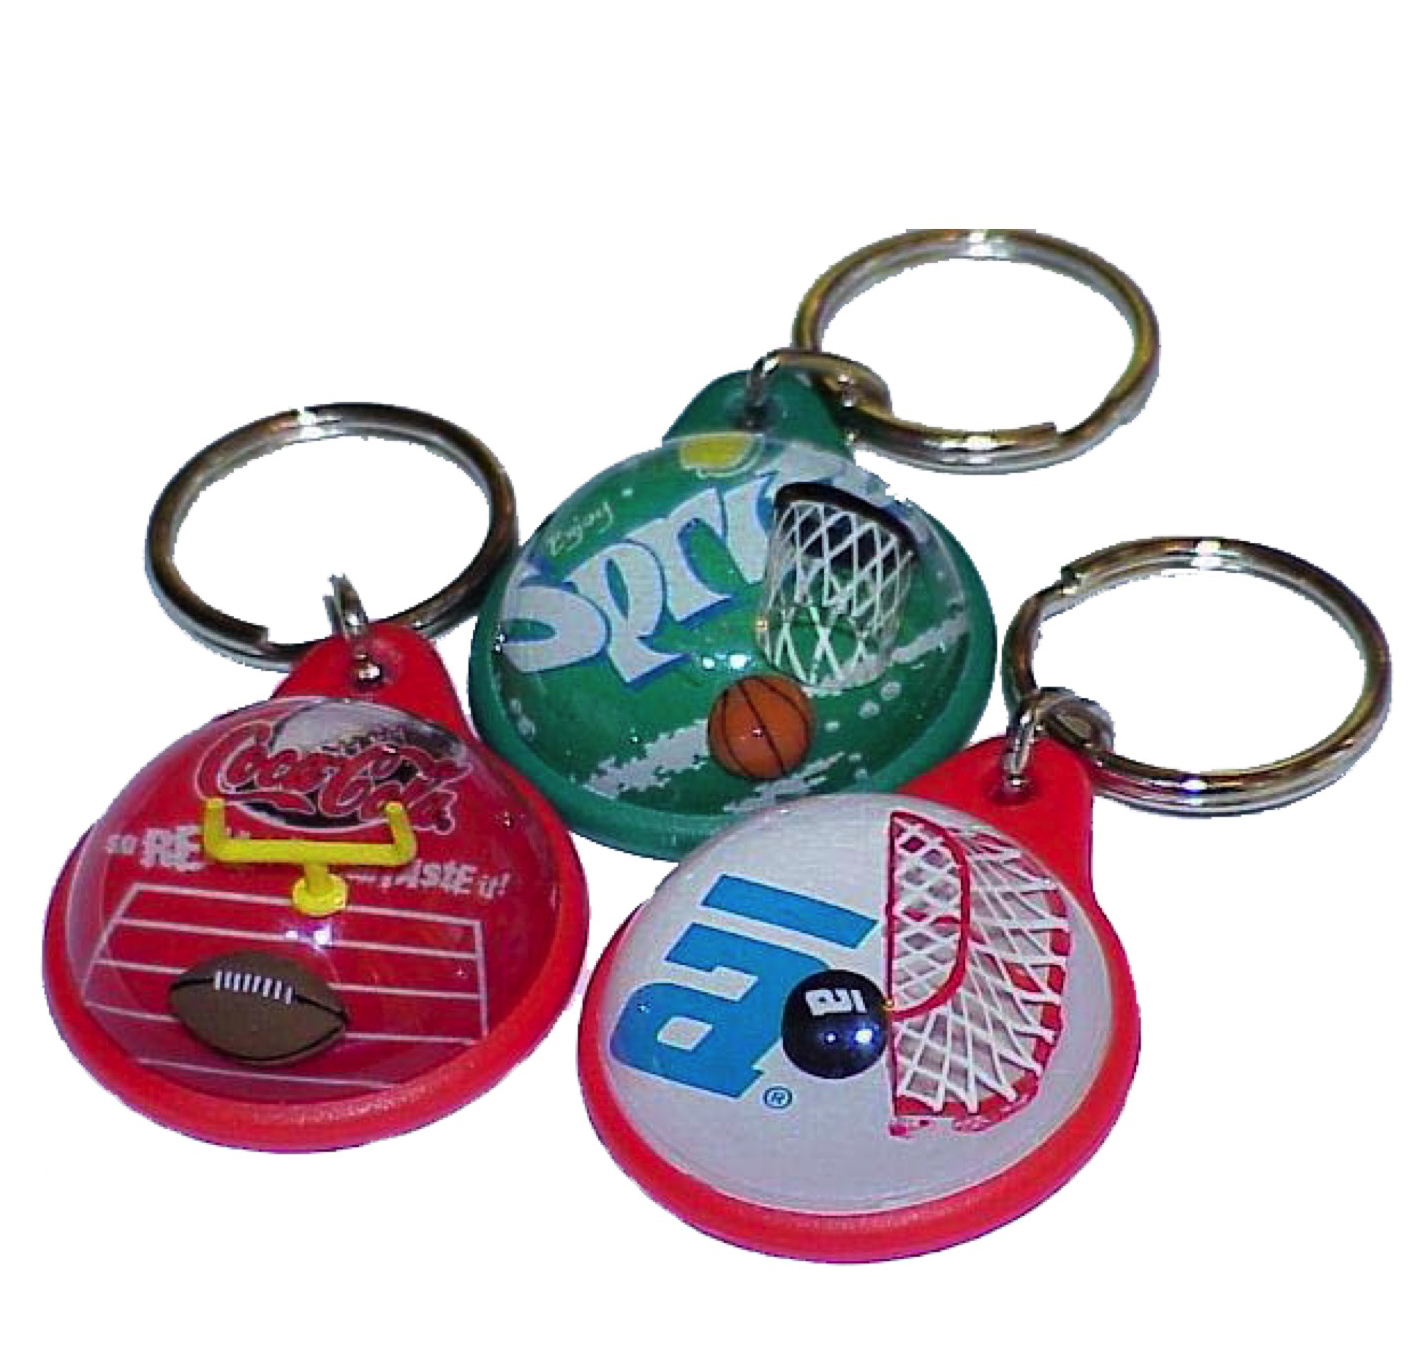 Sport Line of Bubble Keychains